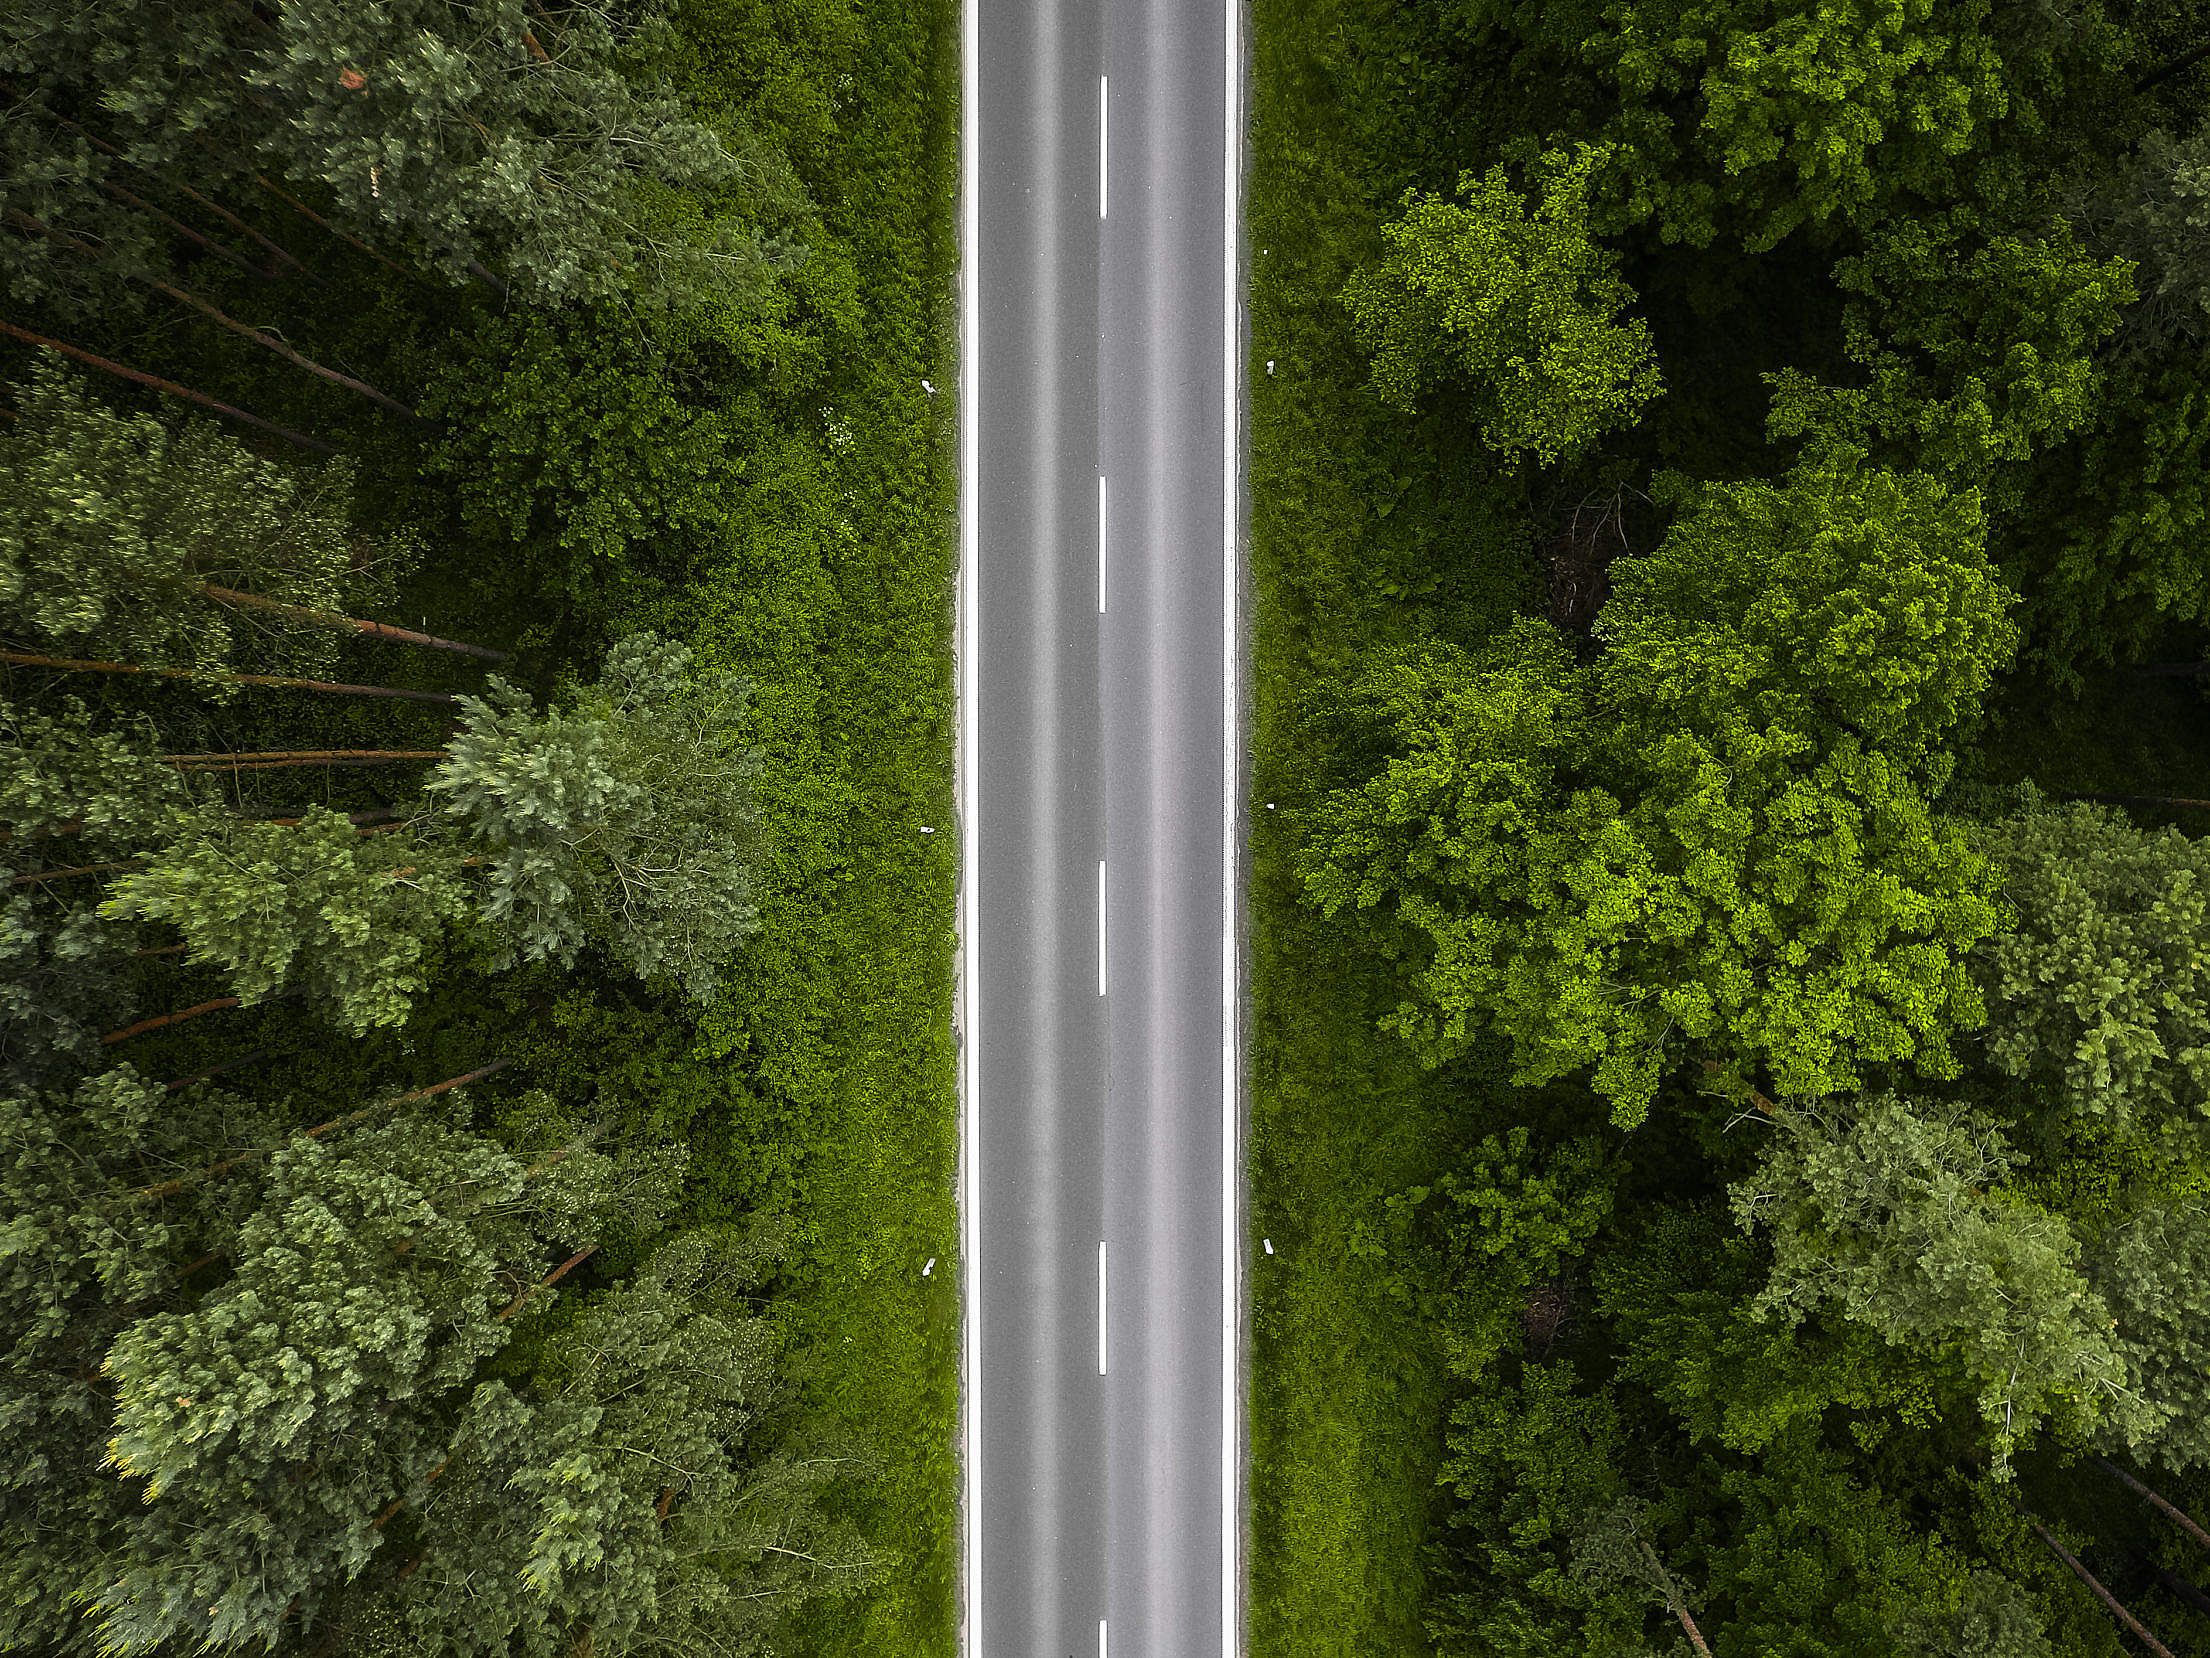 Lonely Road in the Woods Aerial Free Stock Photo